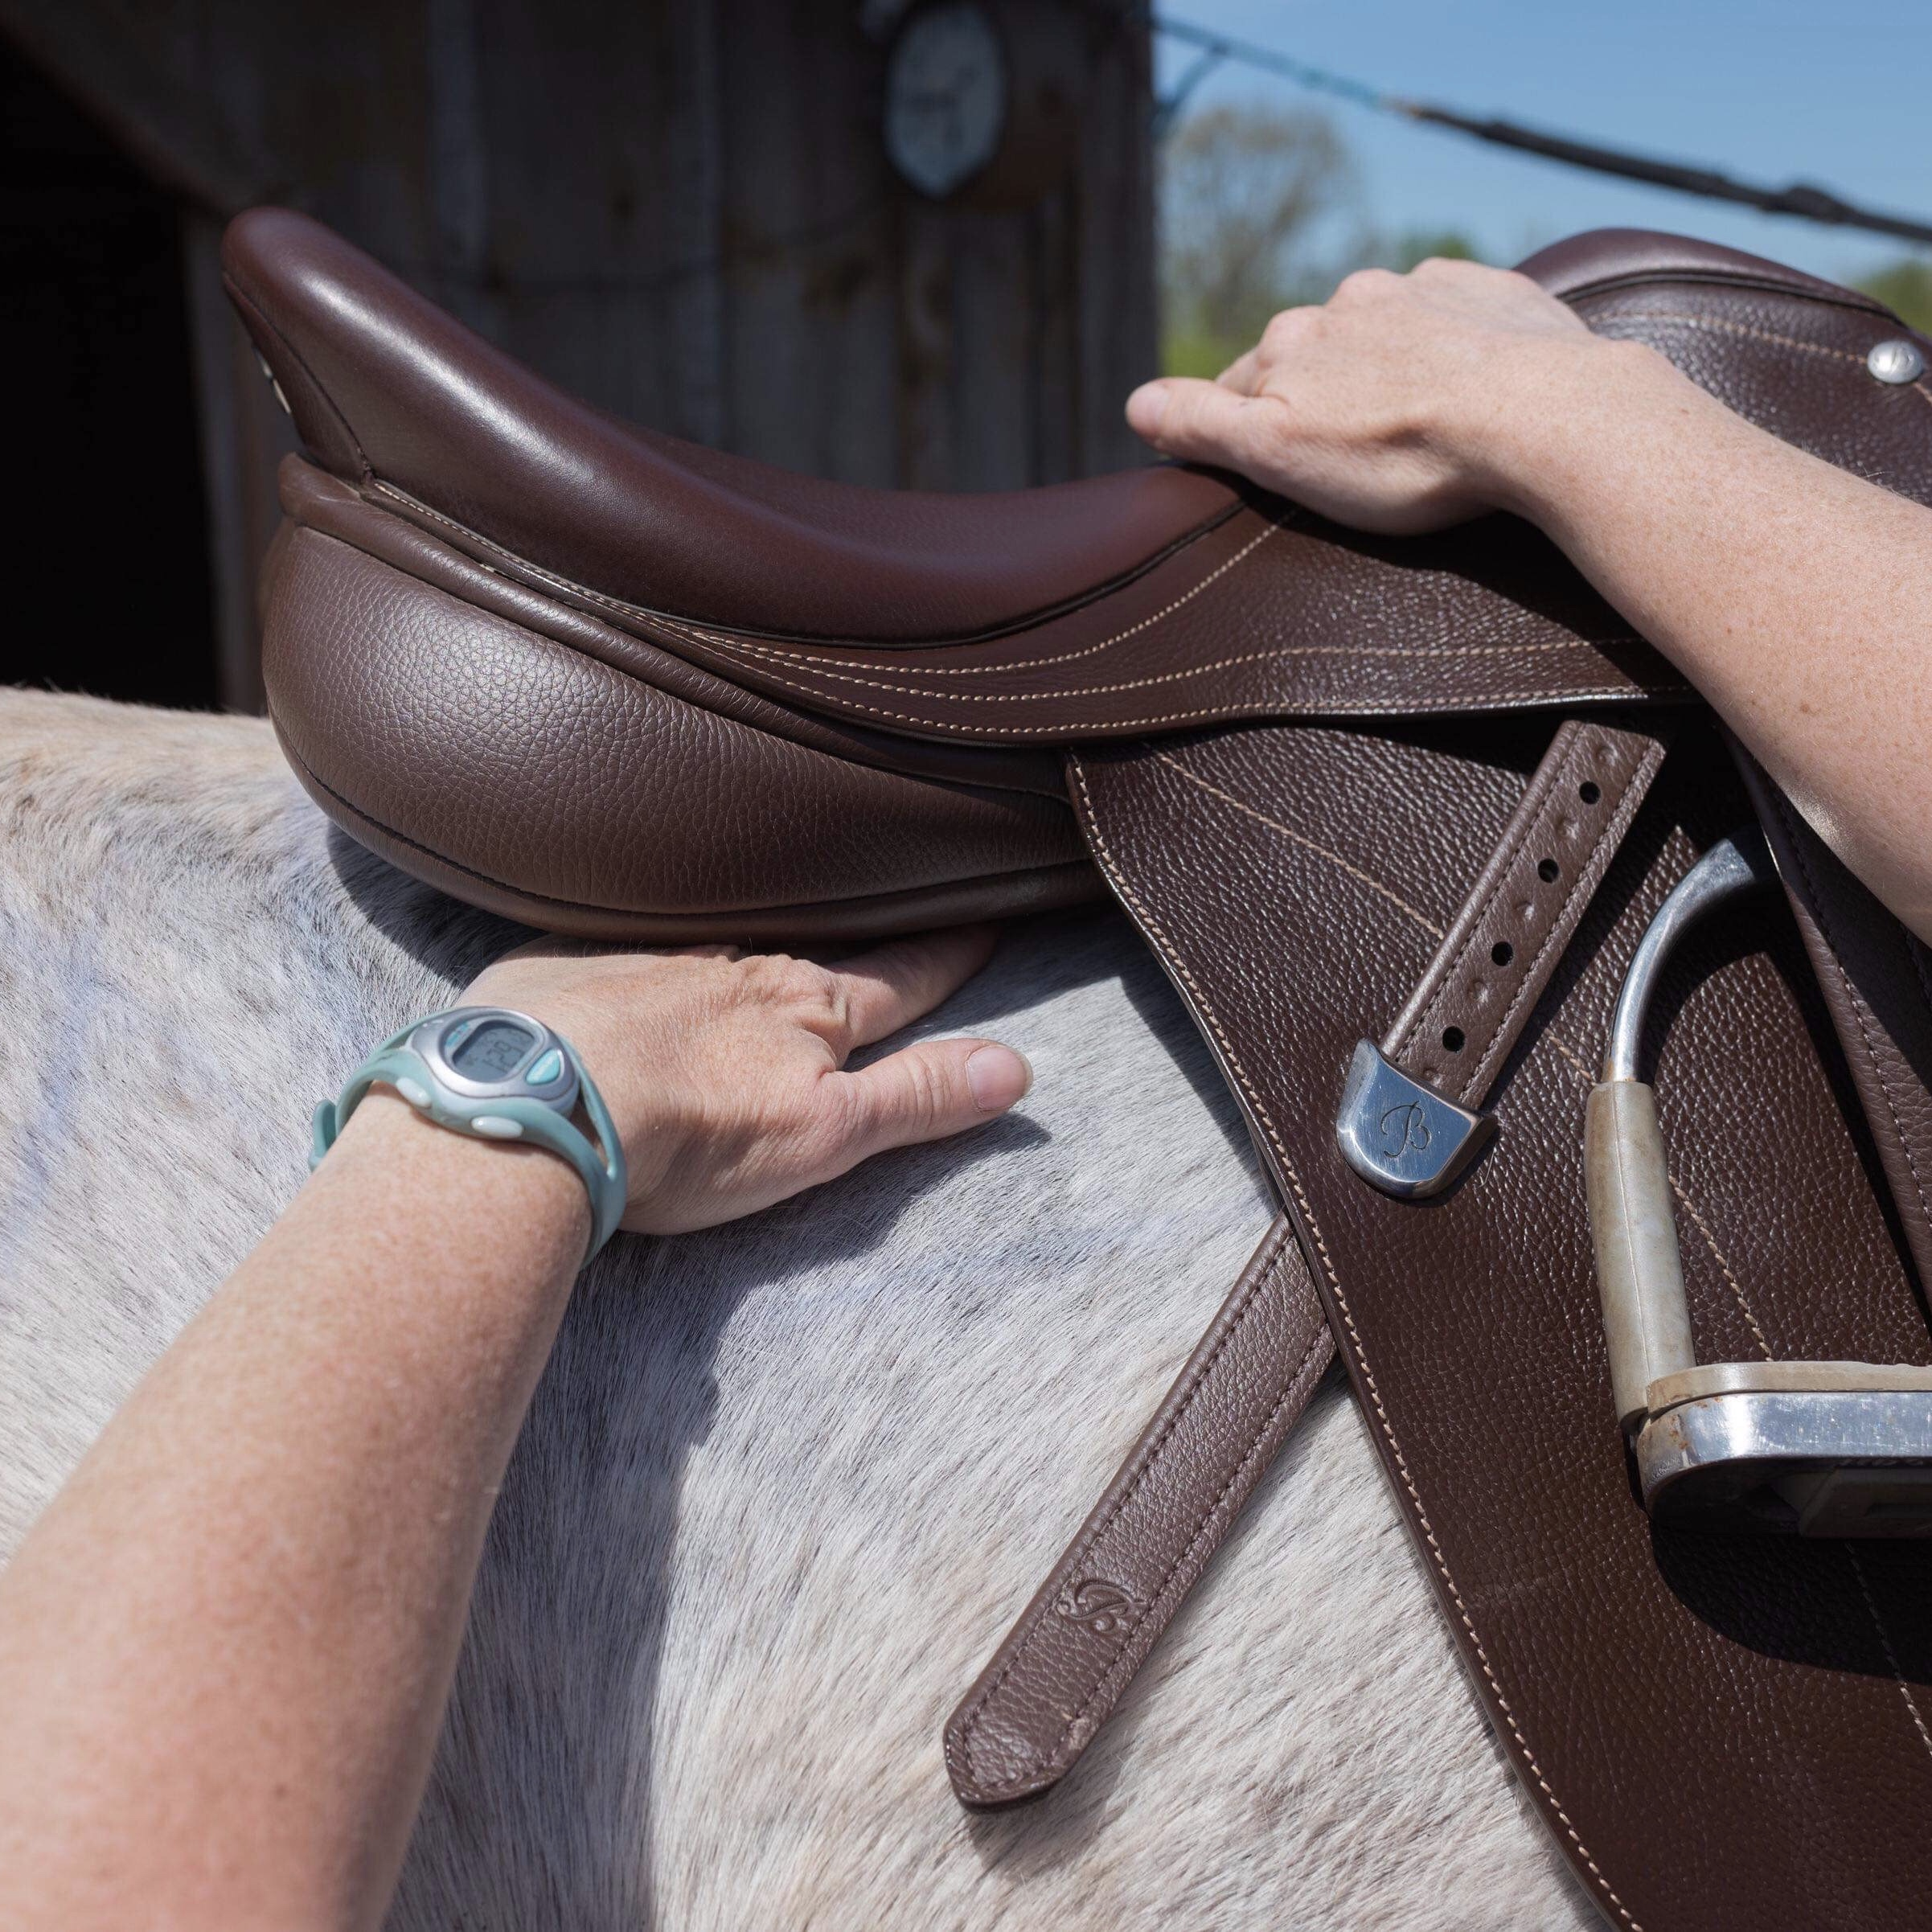 Static Evaluation - Karen will evaluate the saddle for fit